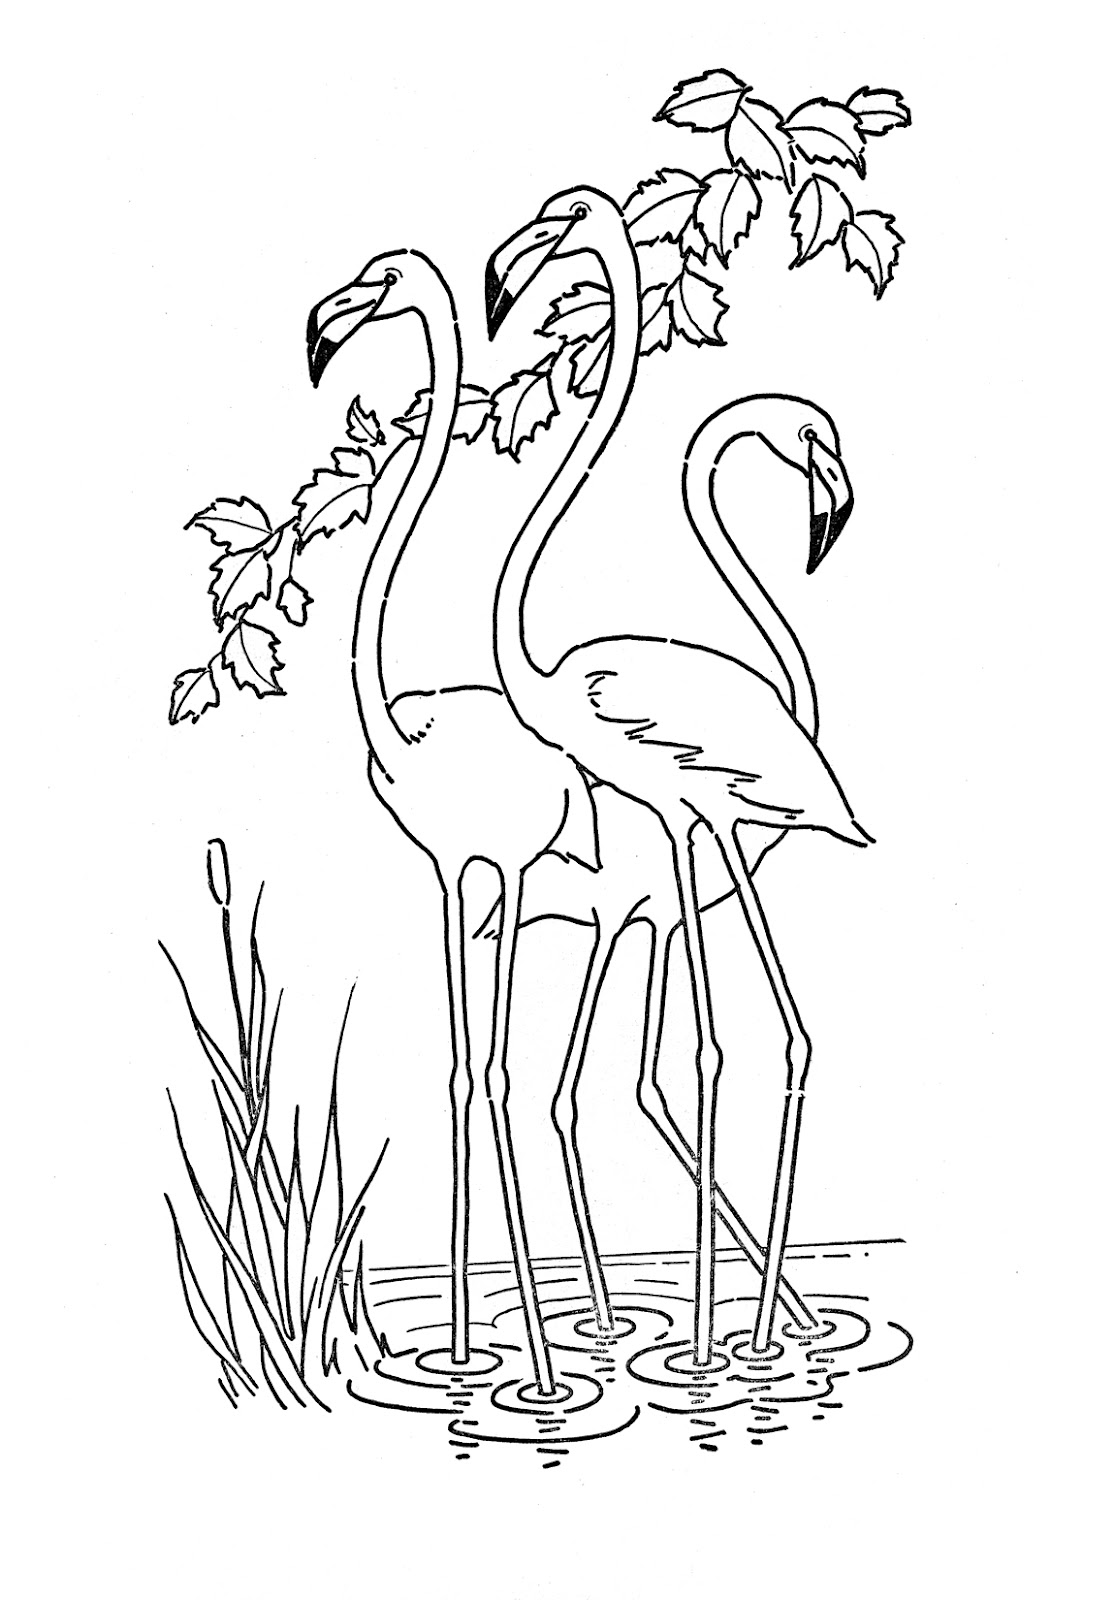 line art coloring pages adult coloring page genie line art line art images line art line coloring pages